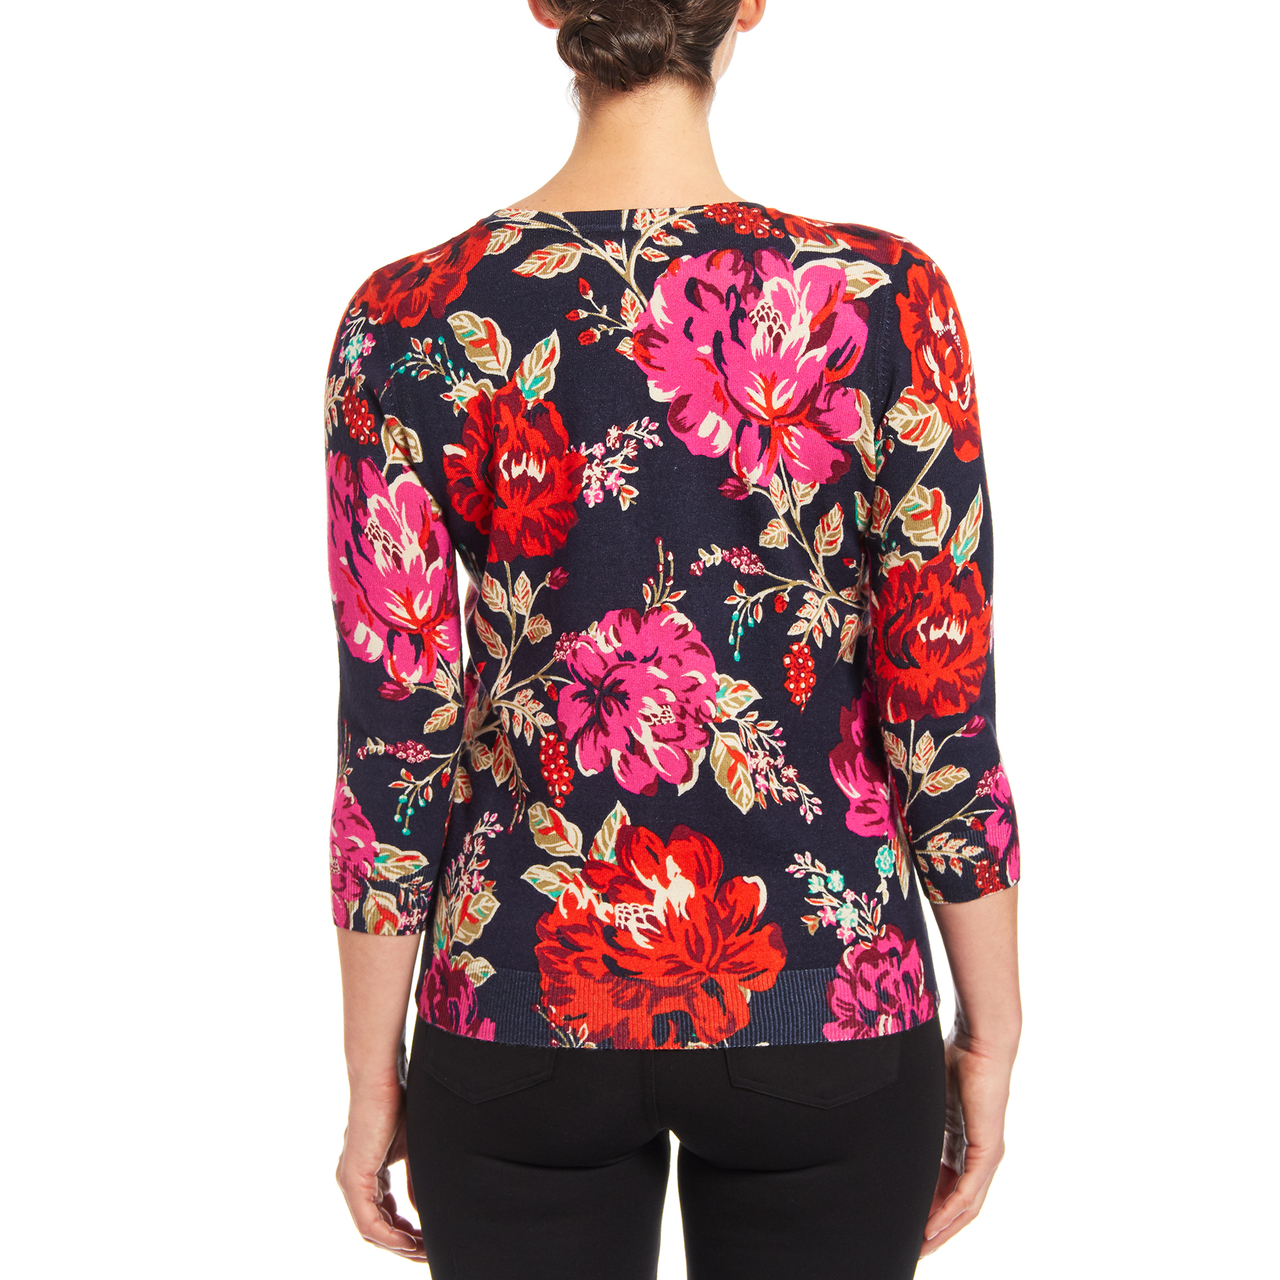 Floral Button-up Cardigan in Nicolette